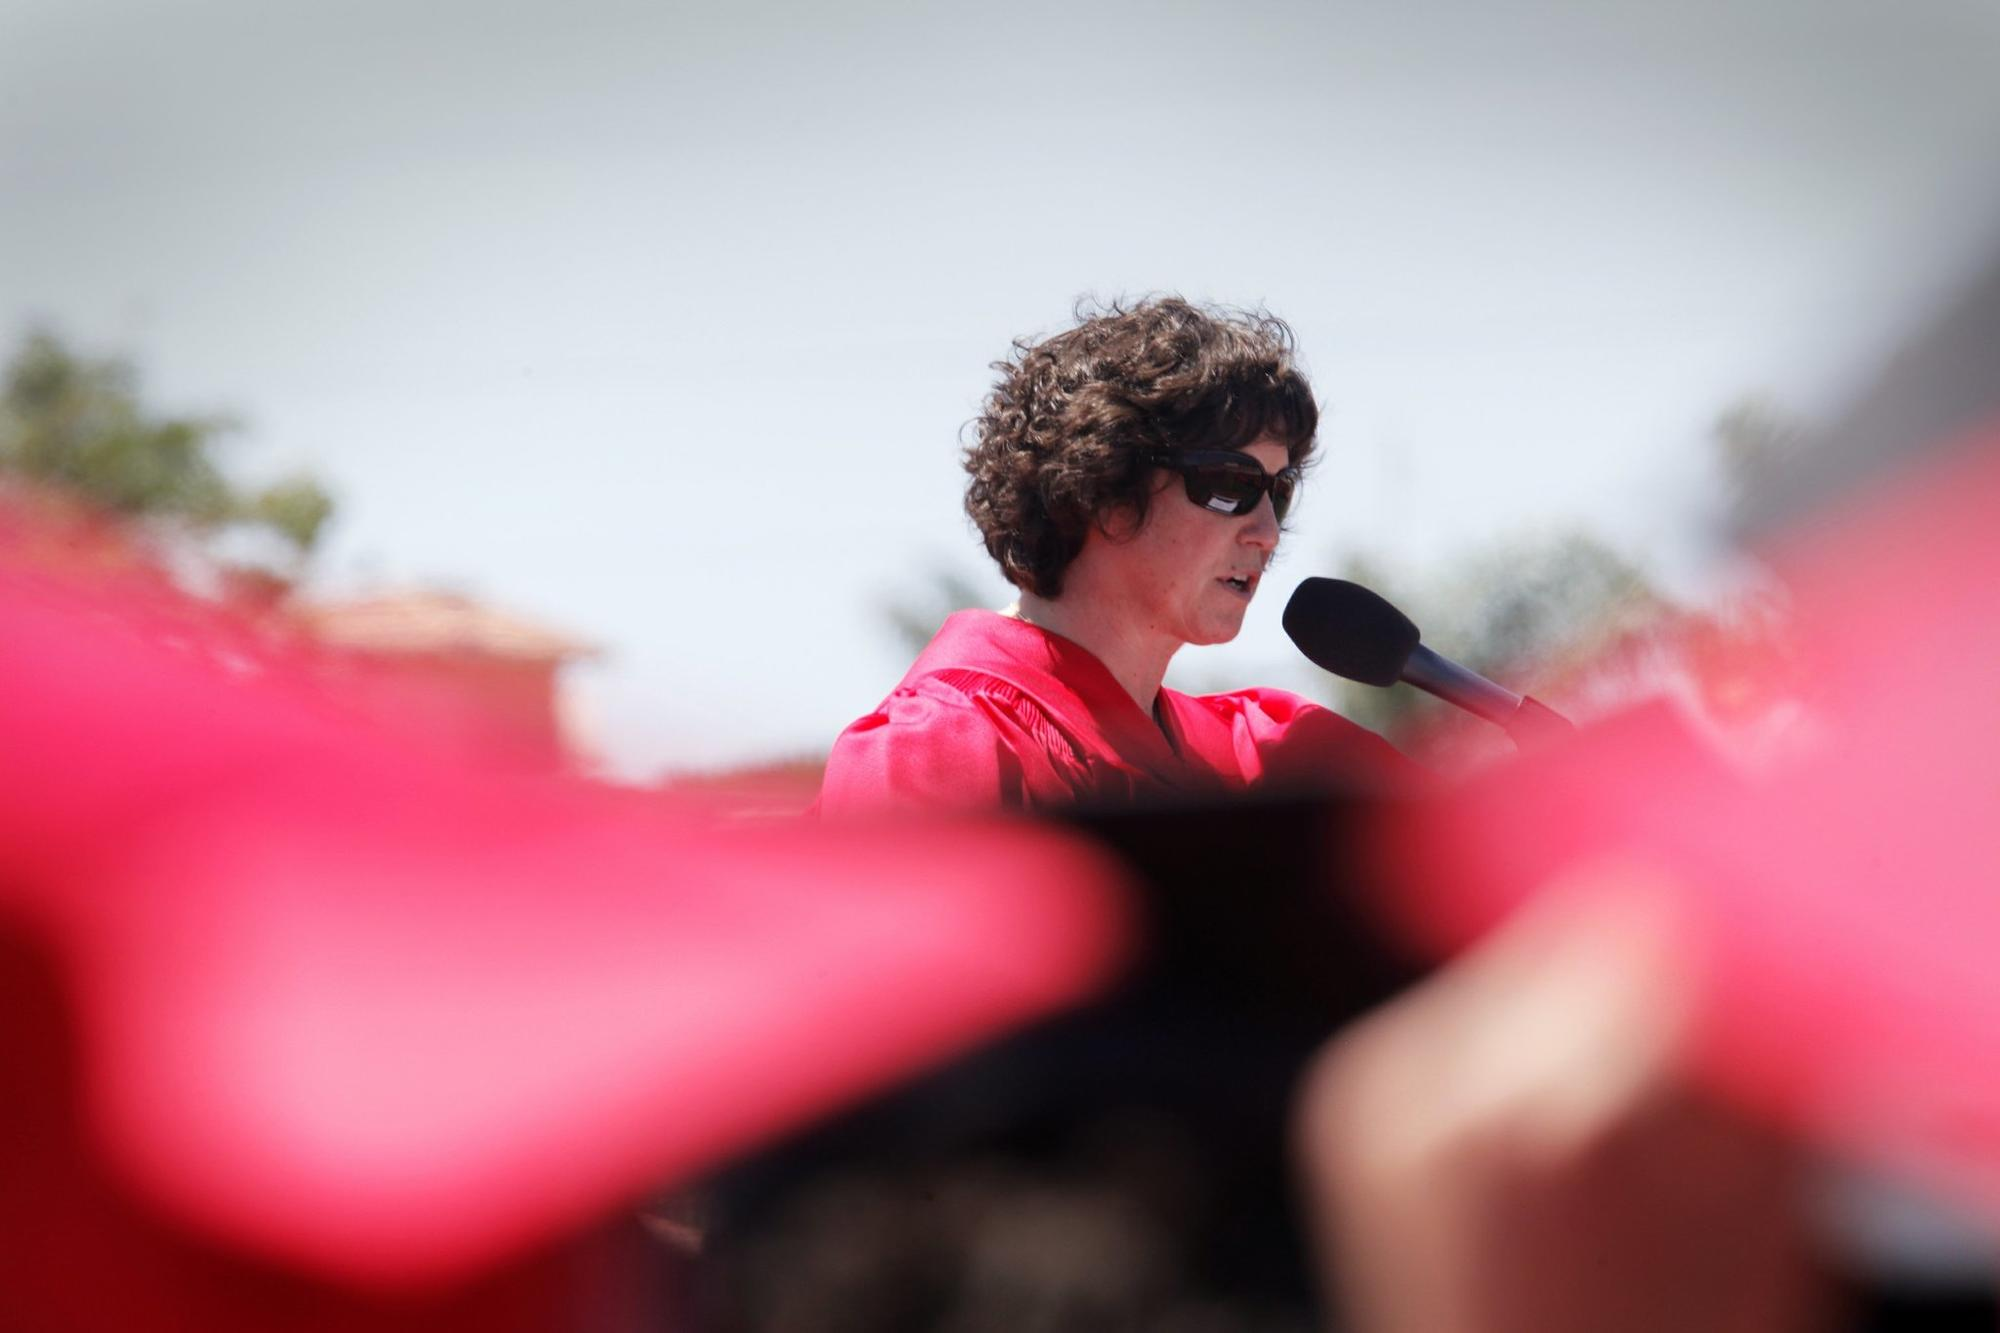 San Diego Unified Superintendent Cindy Marten, shown speaking at La Jolla High School graduation ceremonies, acknowledges her district could do a better job explaining personnel